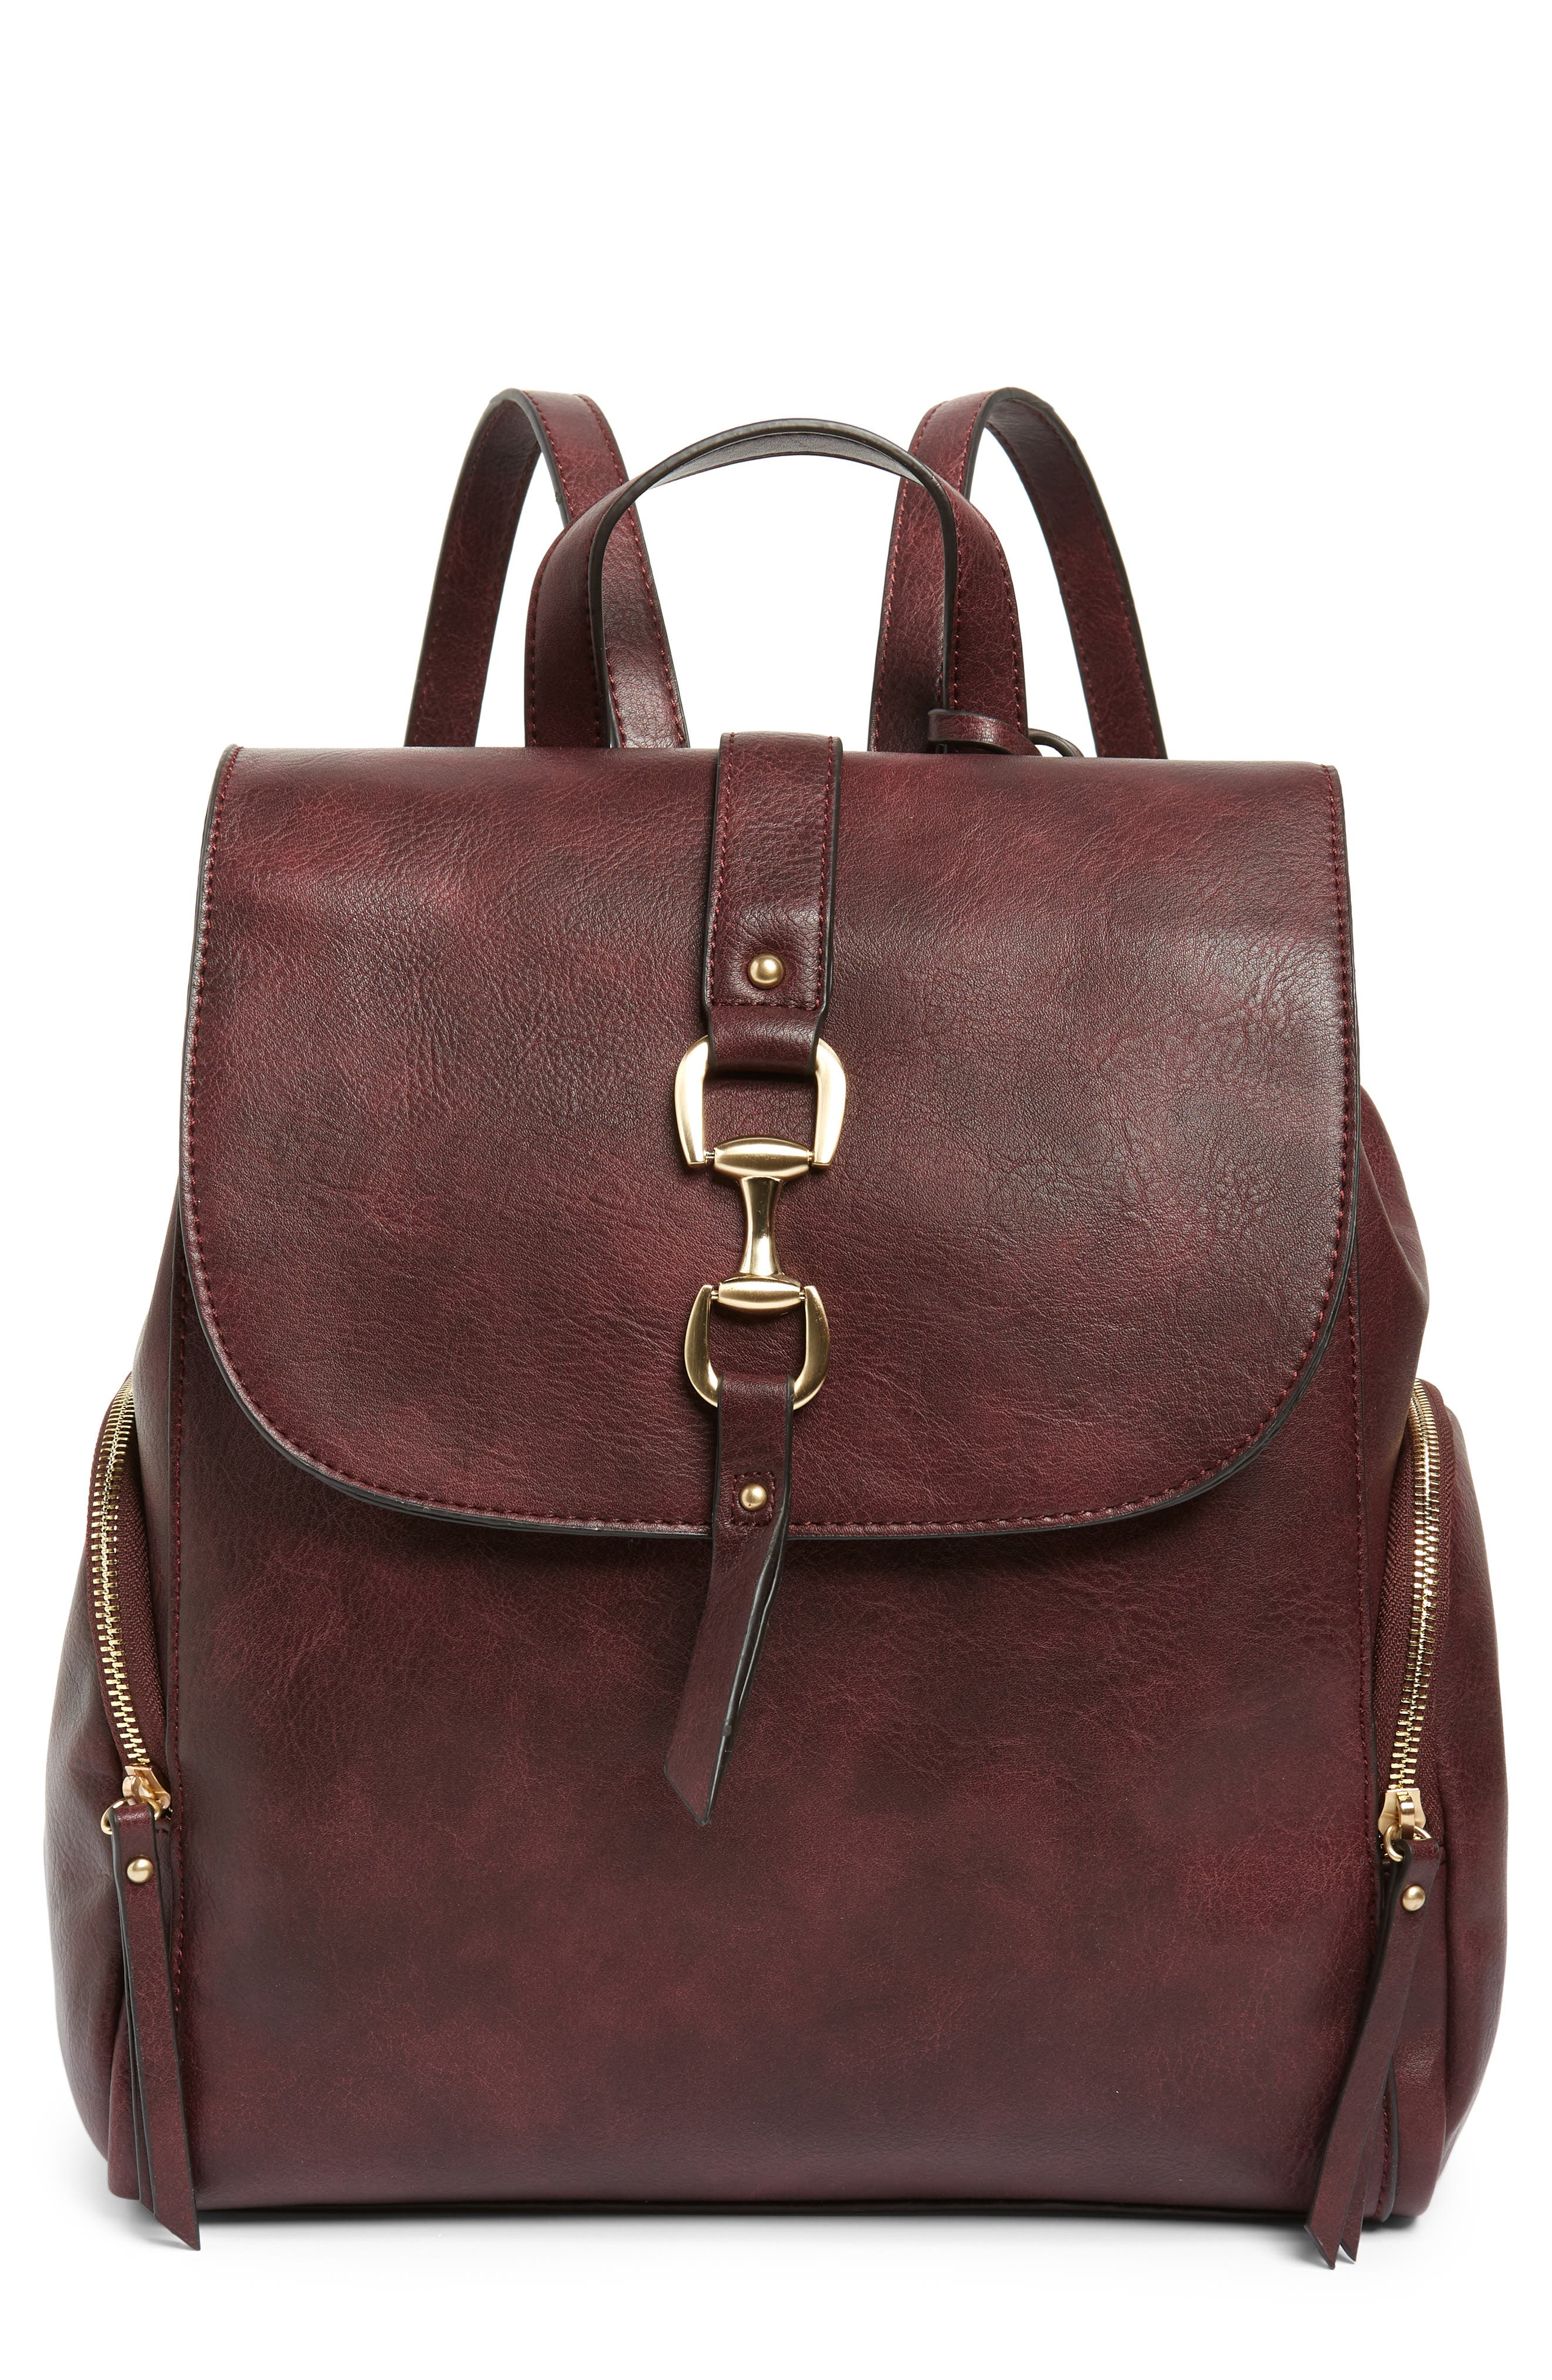 Sole Society Marah Faux Leather Backpack - Burgundy